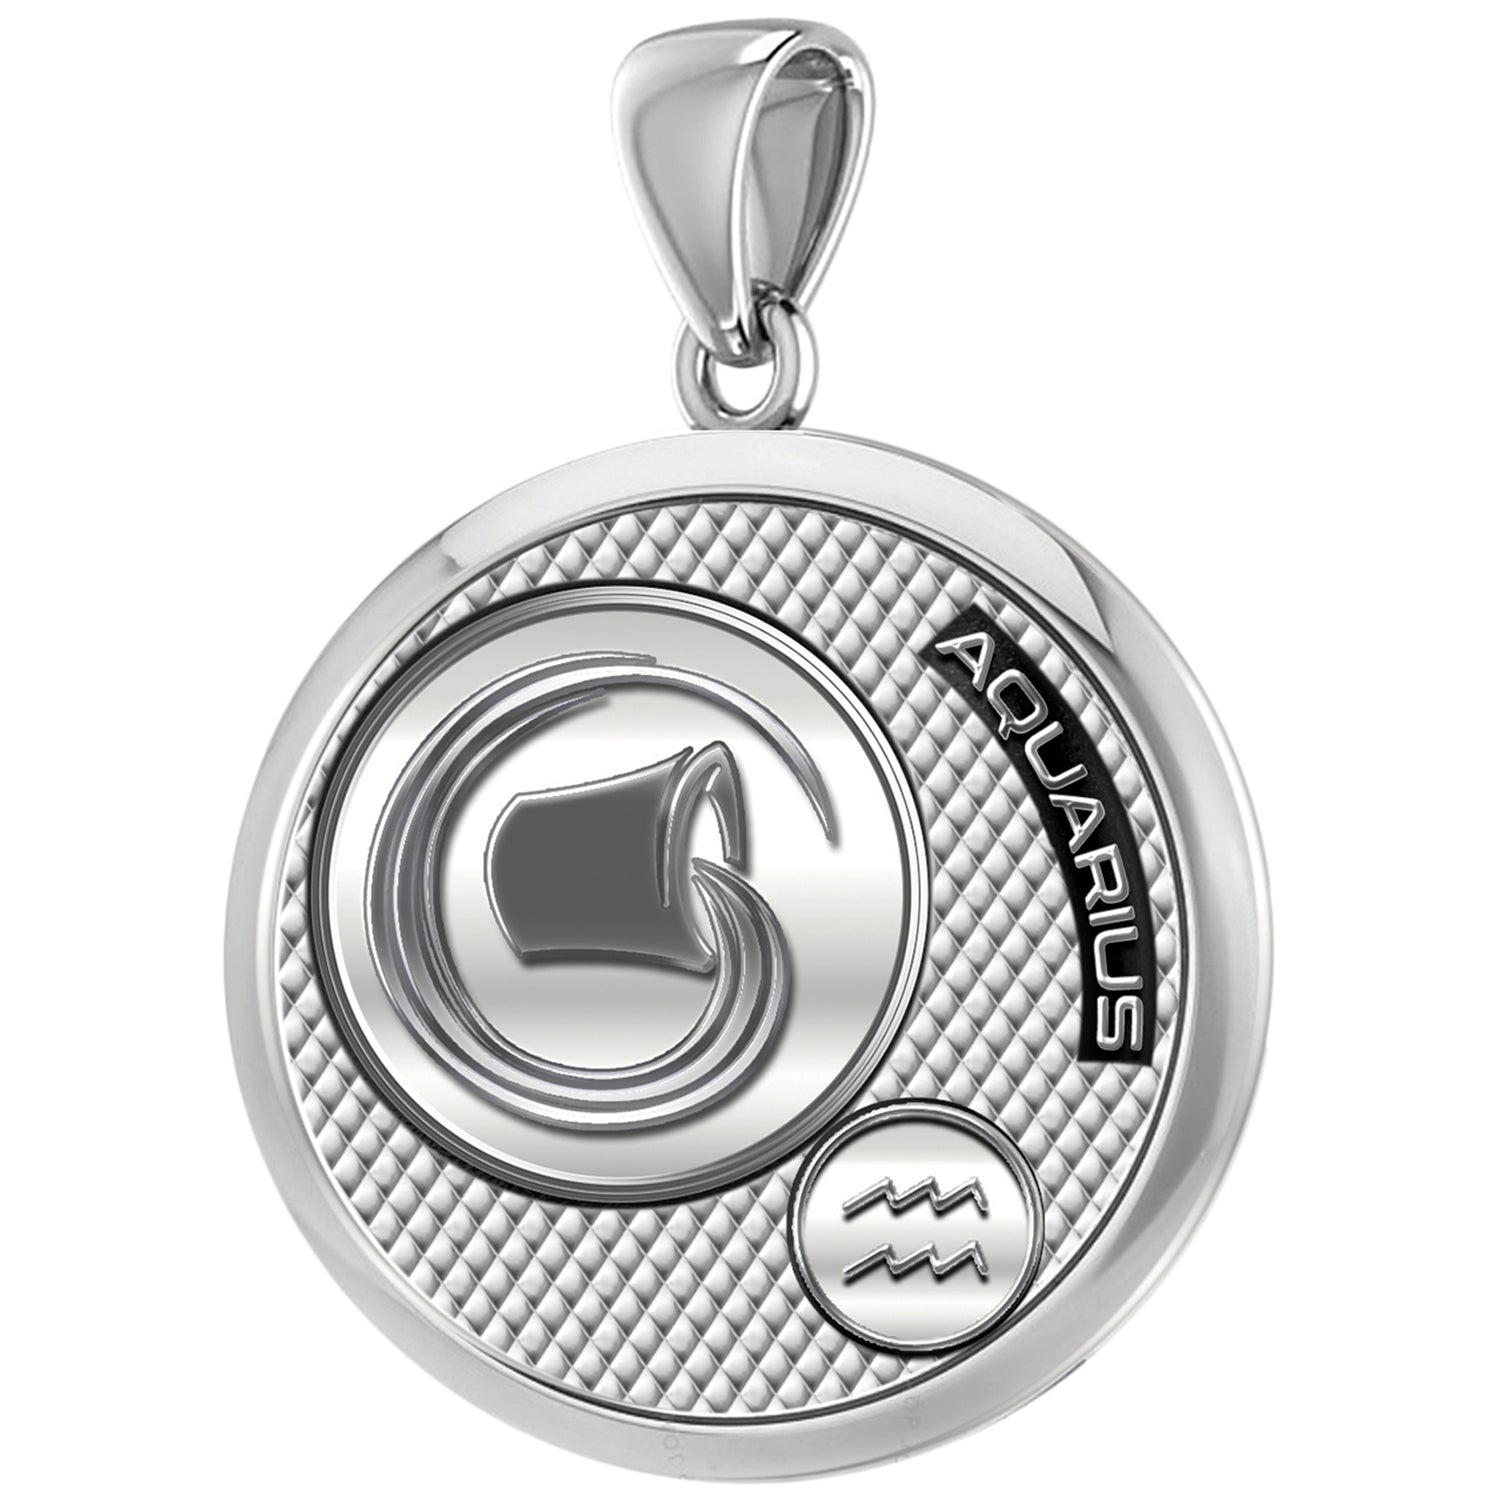 Aquarius Necklace In Round For Men - Pendant Only